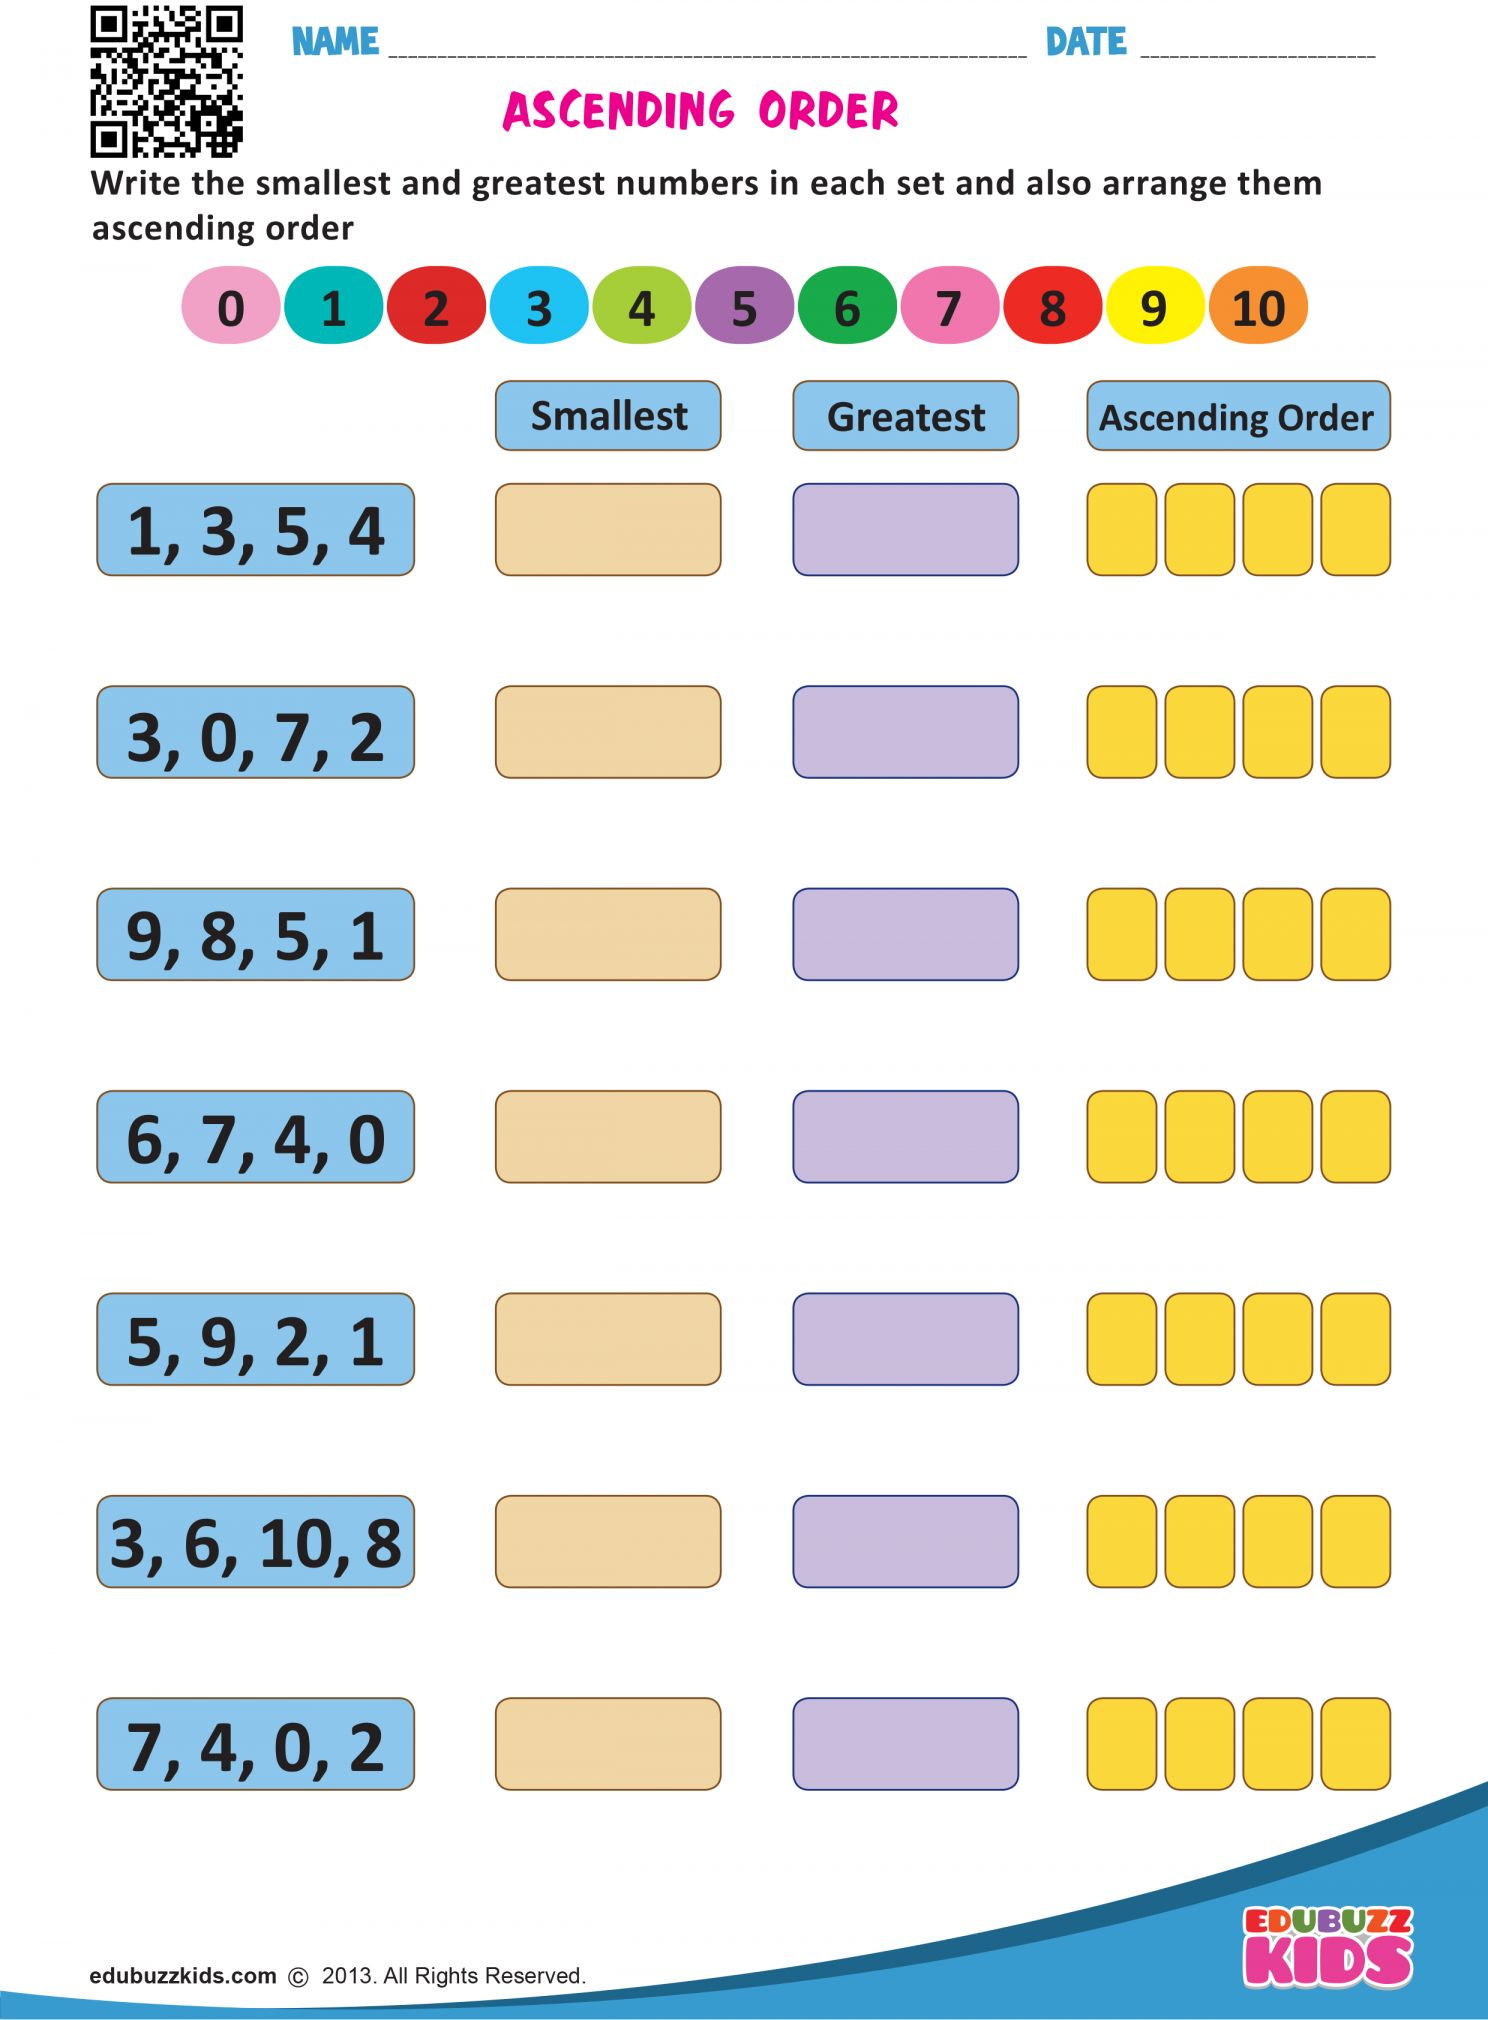 hight resolution of Descending Order Polynomials Worksheet   Printable Worksheets and  Activities for Teachers